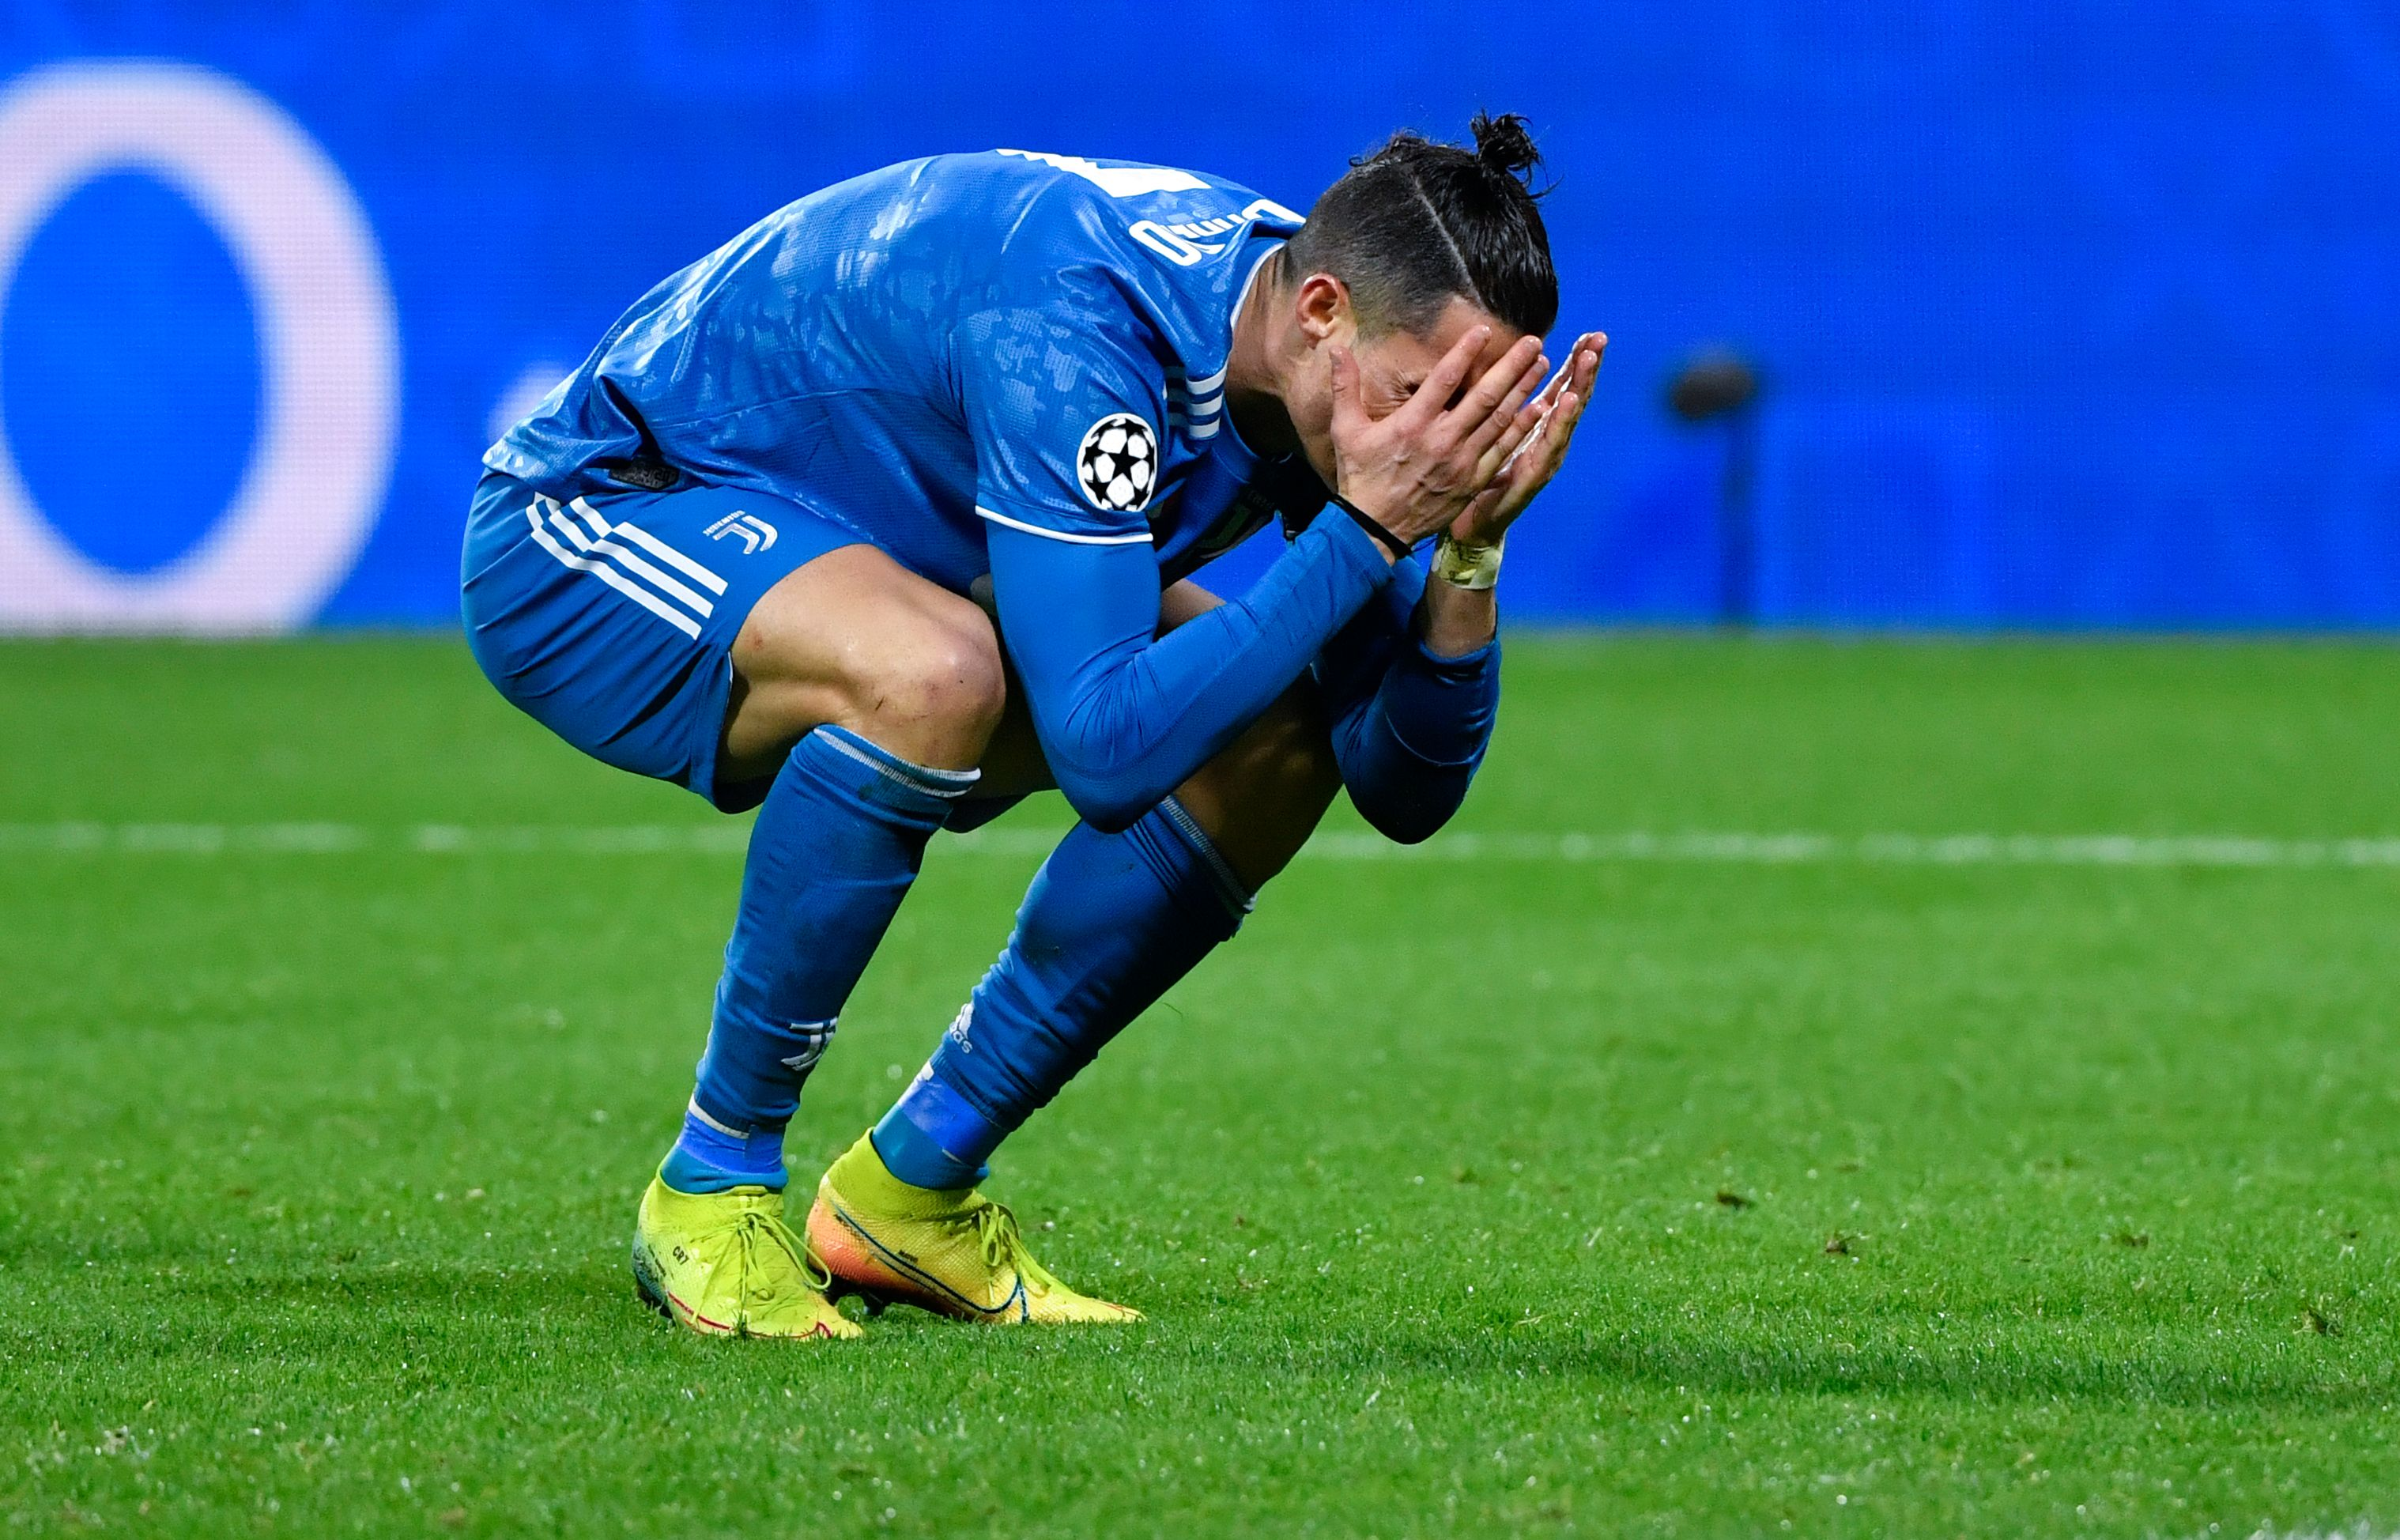 Cristiano Ronaldo's frustration was clear to see.